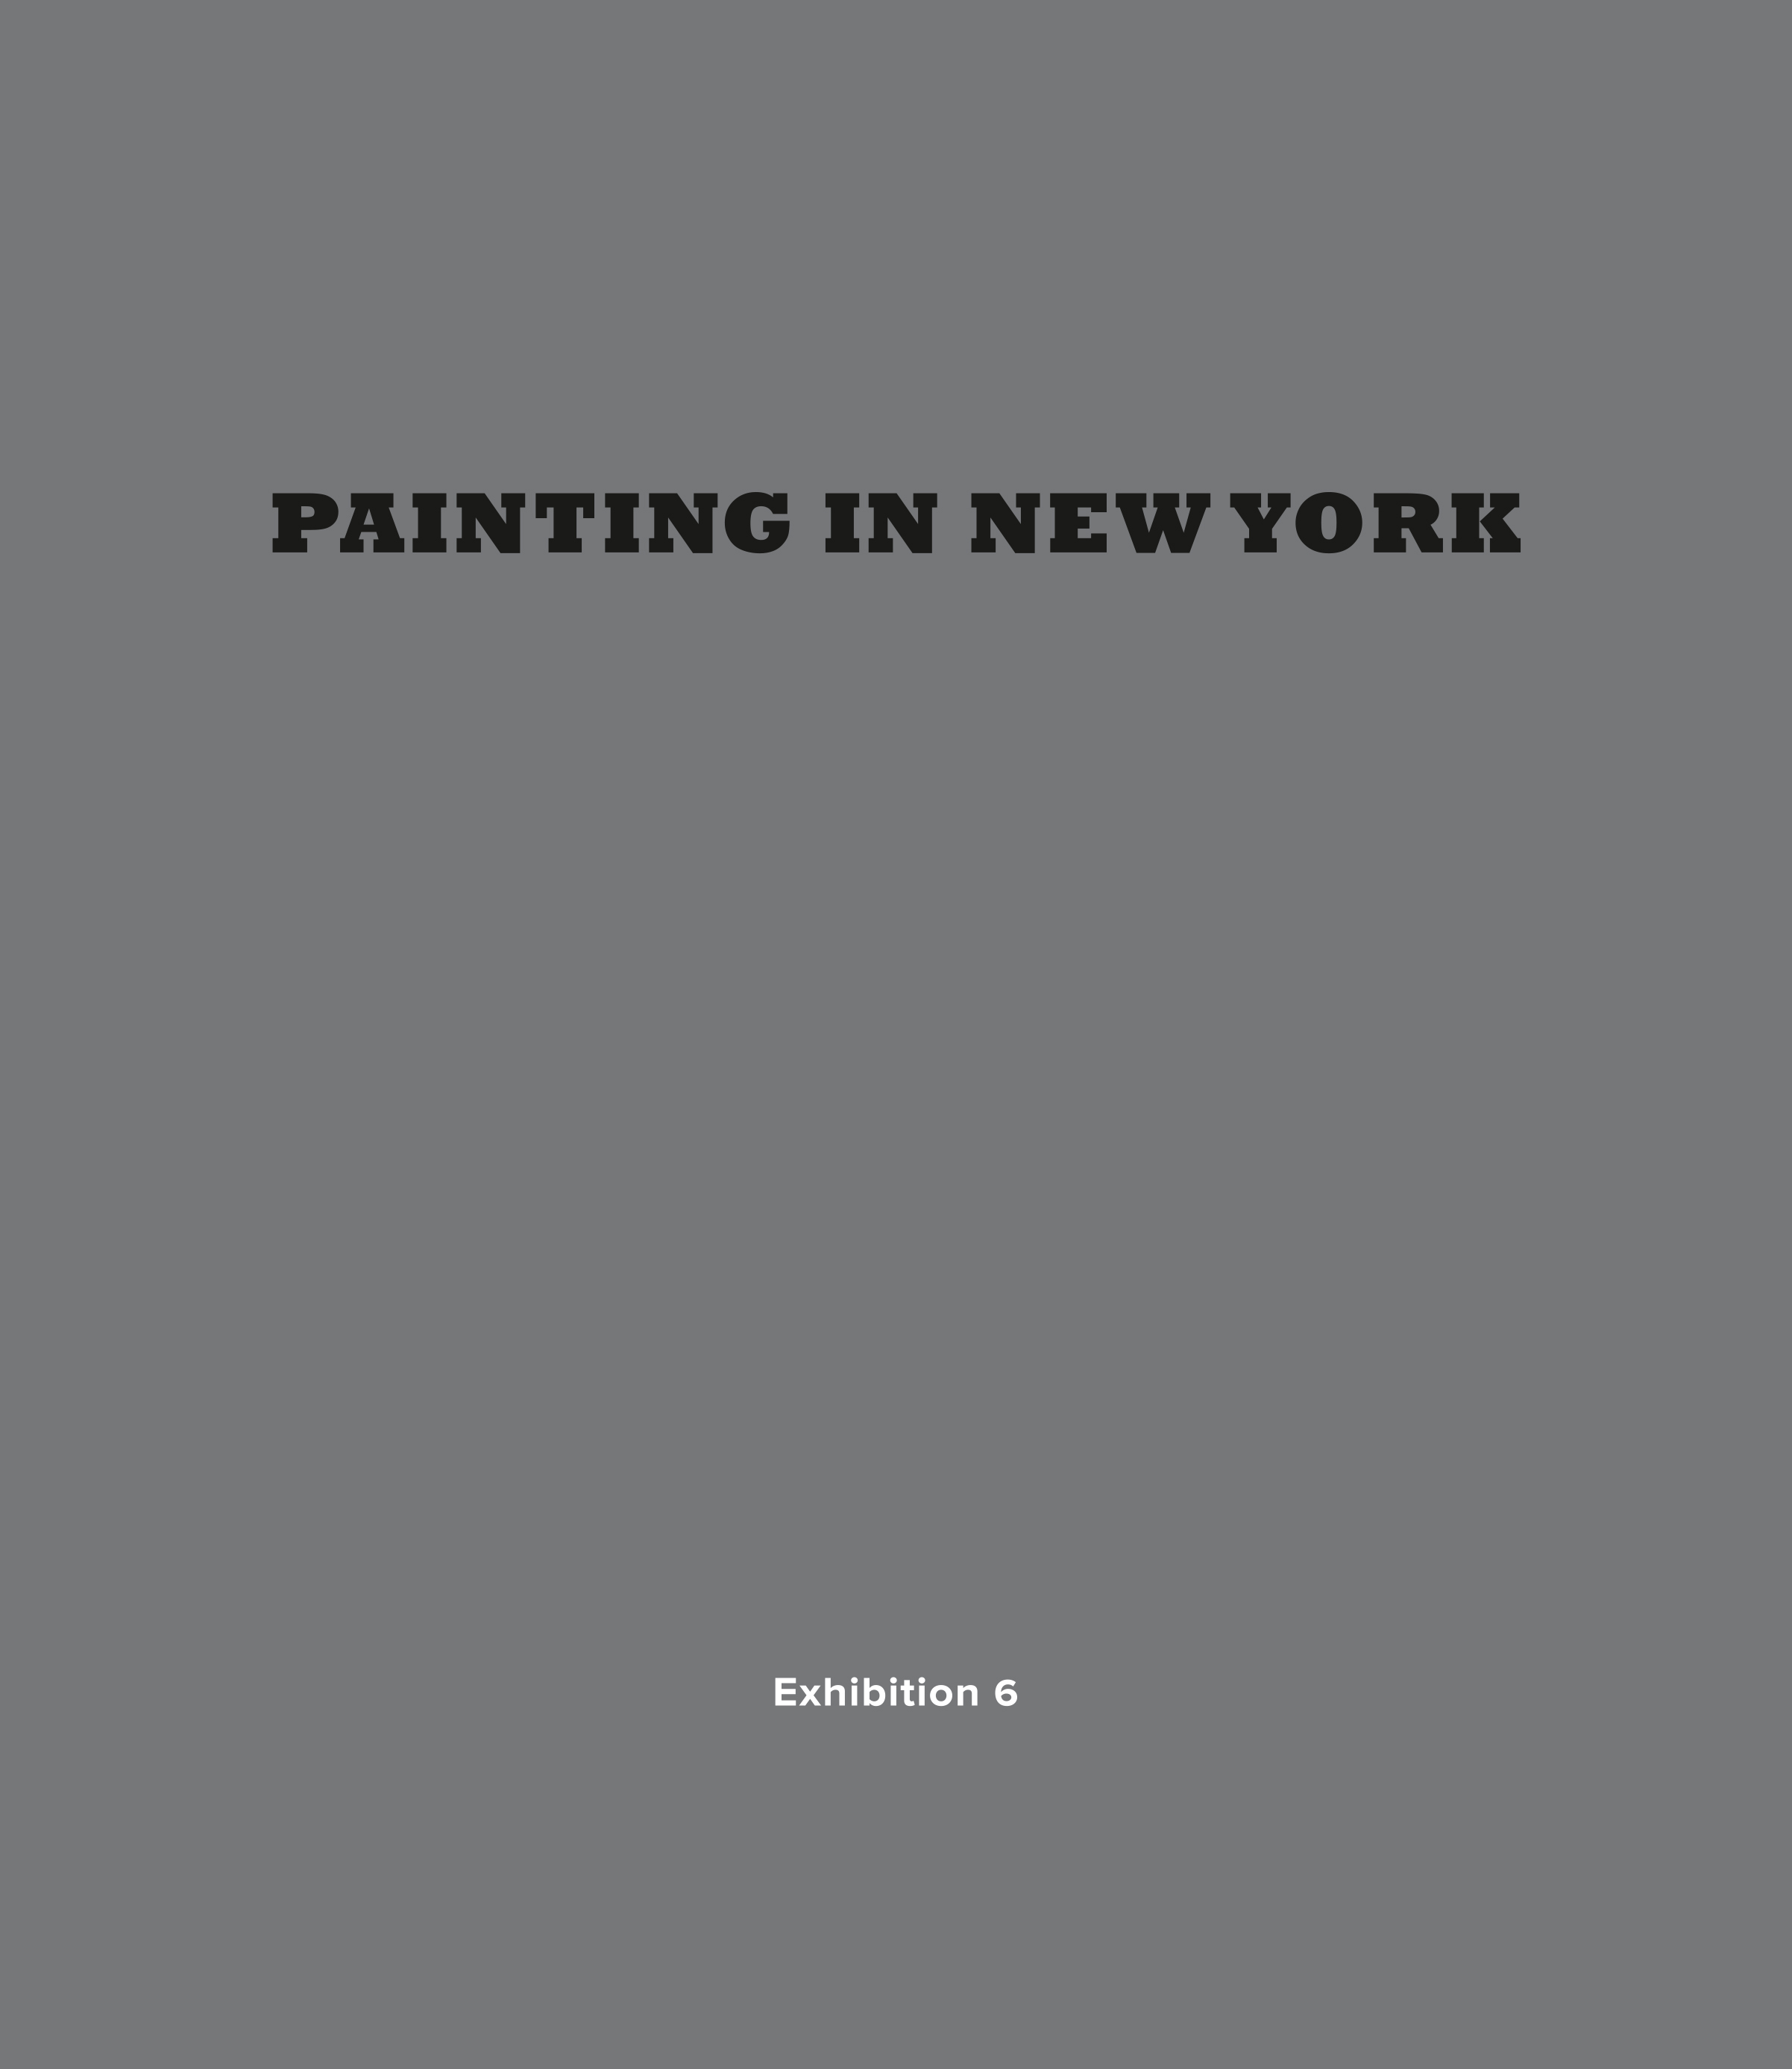 P ainting in New York  - at Leigh Morse gallery, NYC, 2017